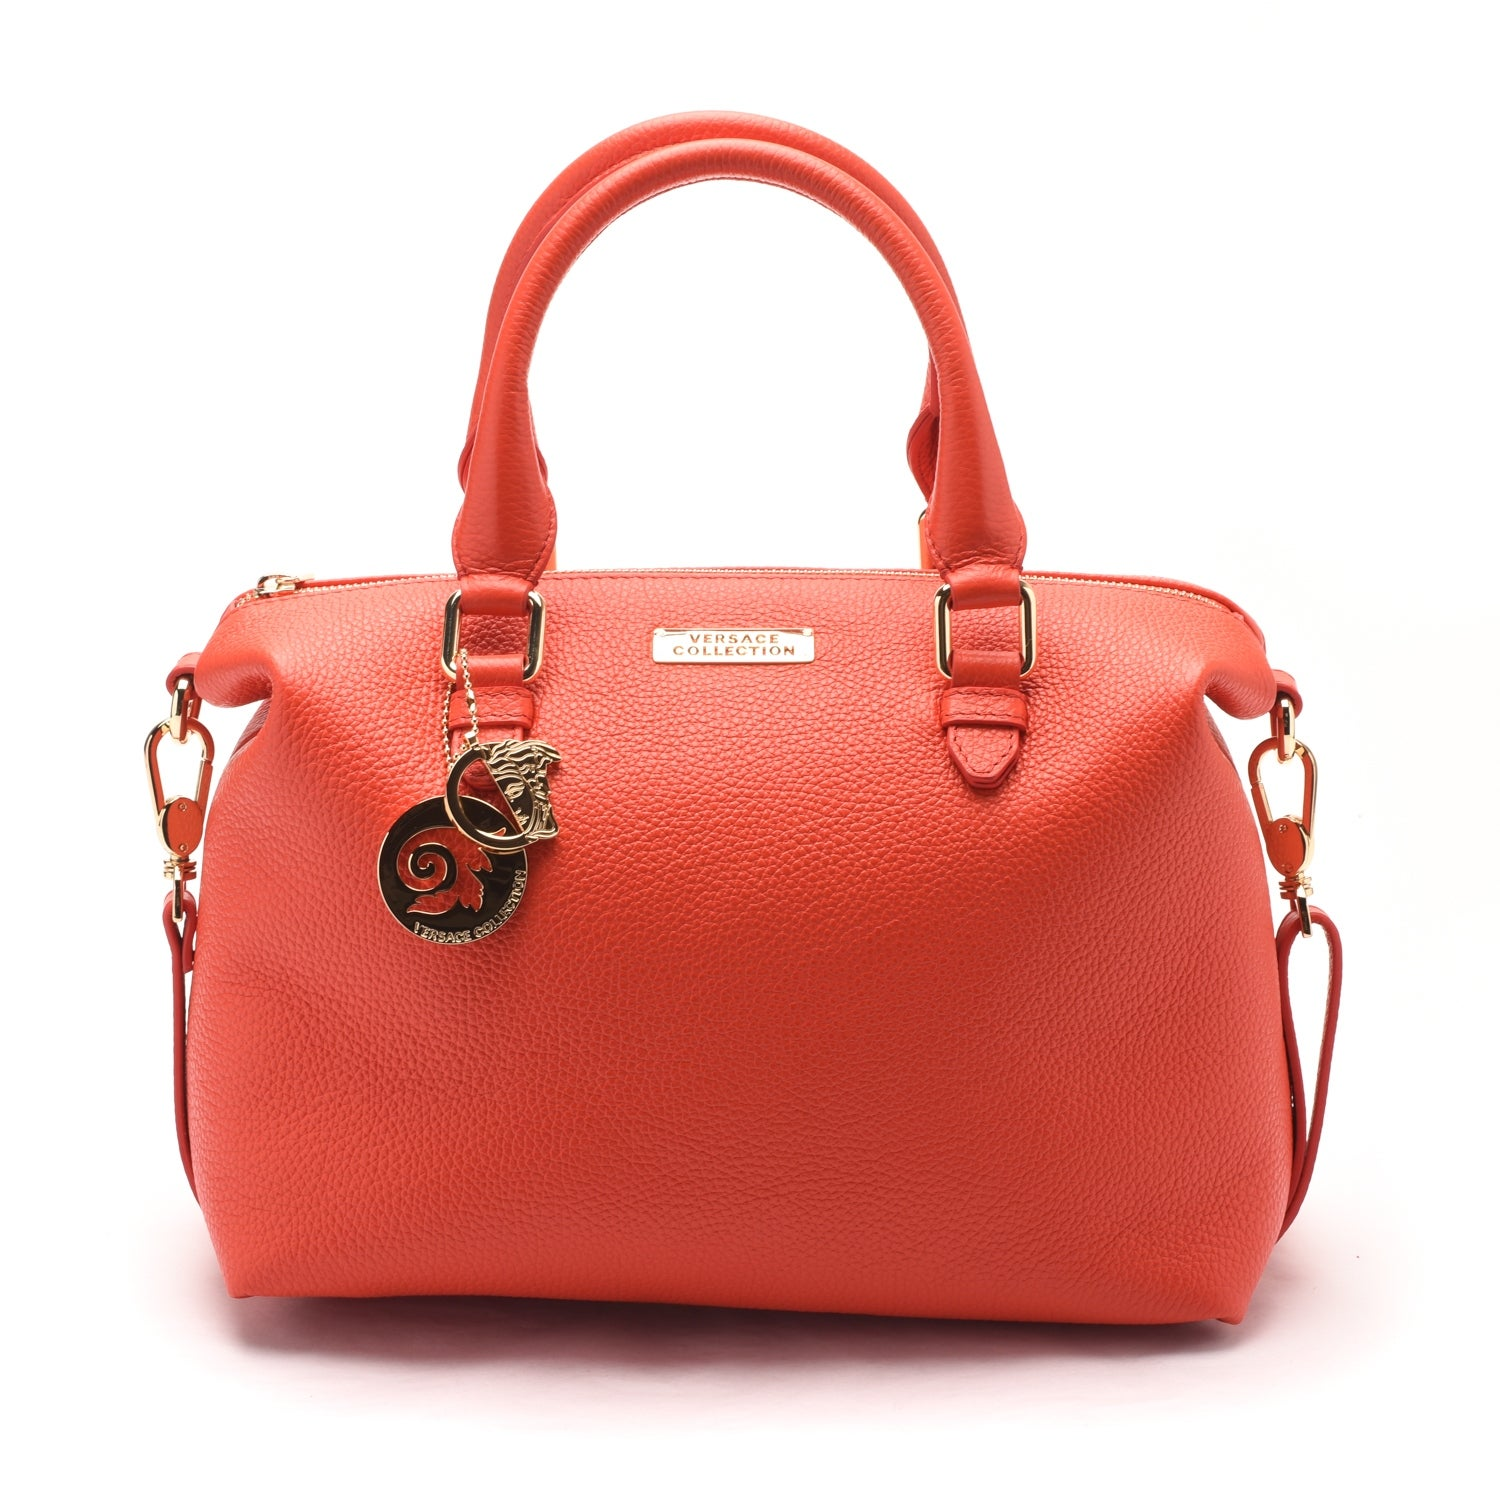 Versace Collections Women Pebbled Leather Top Handle Shoulder Handbag Satchel Red - M - Thumbnail 0